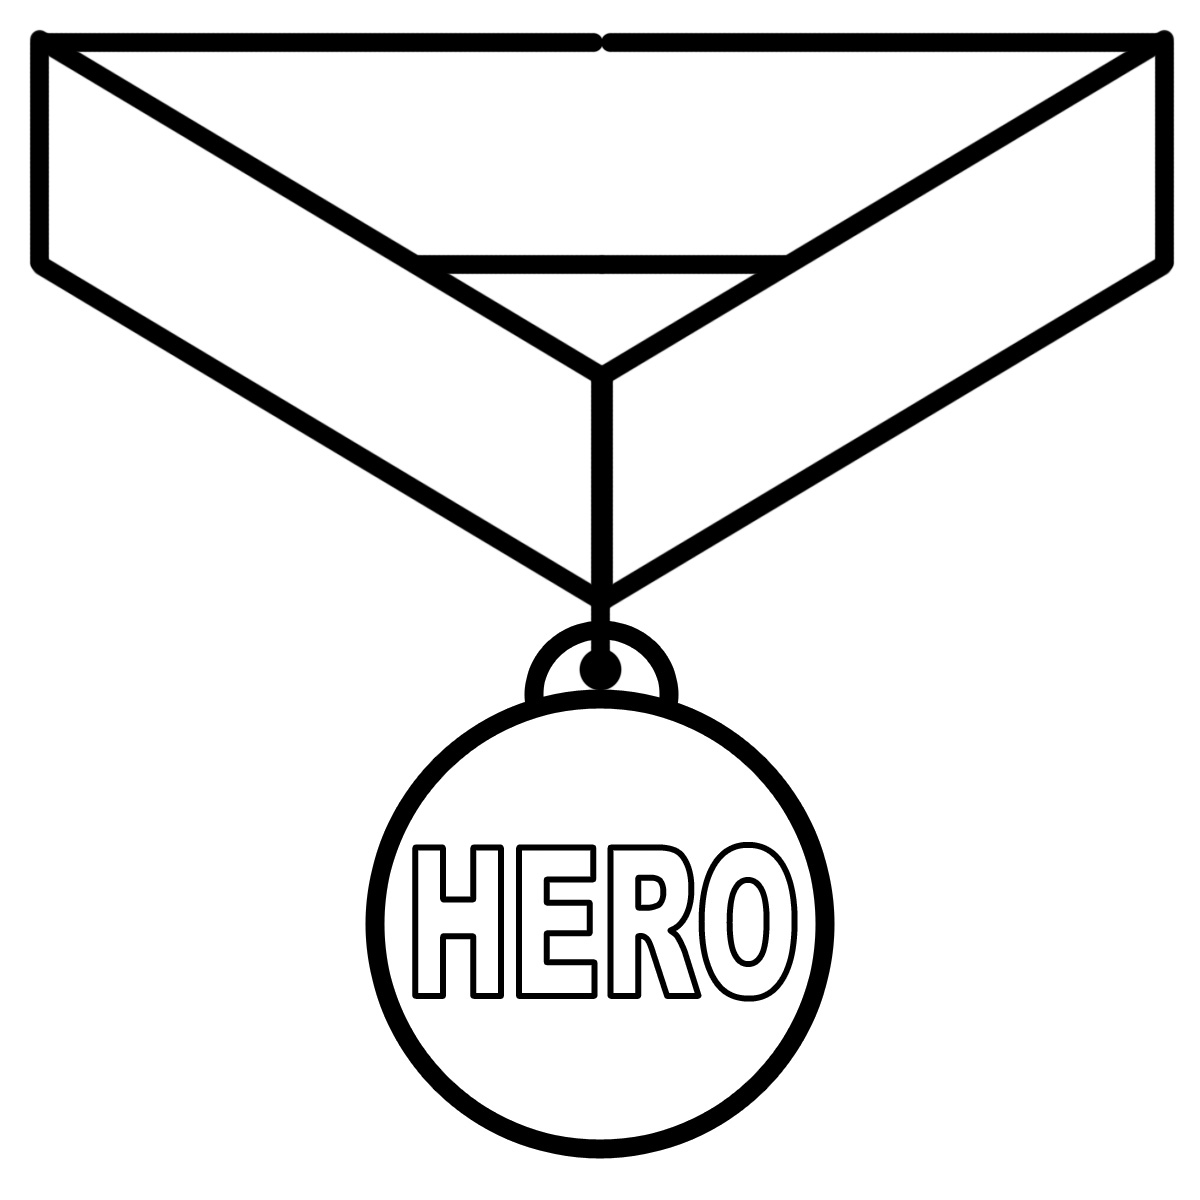 Medal clipart black and white 3 » Clipart Station.